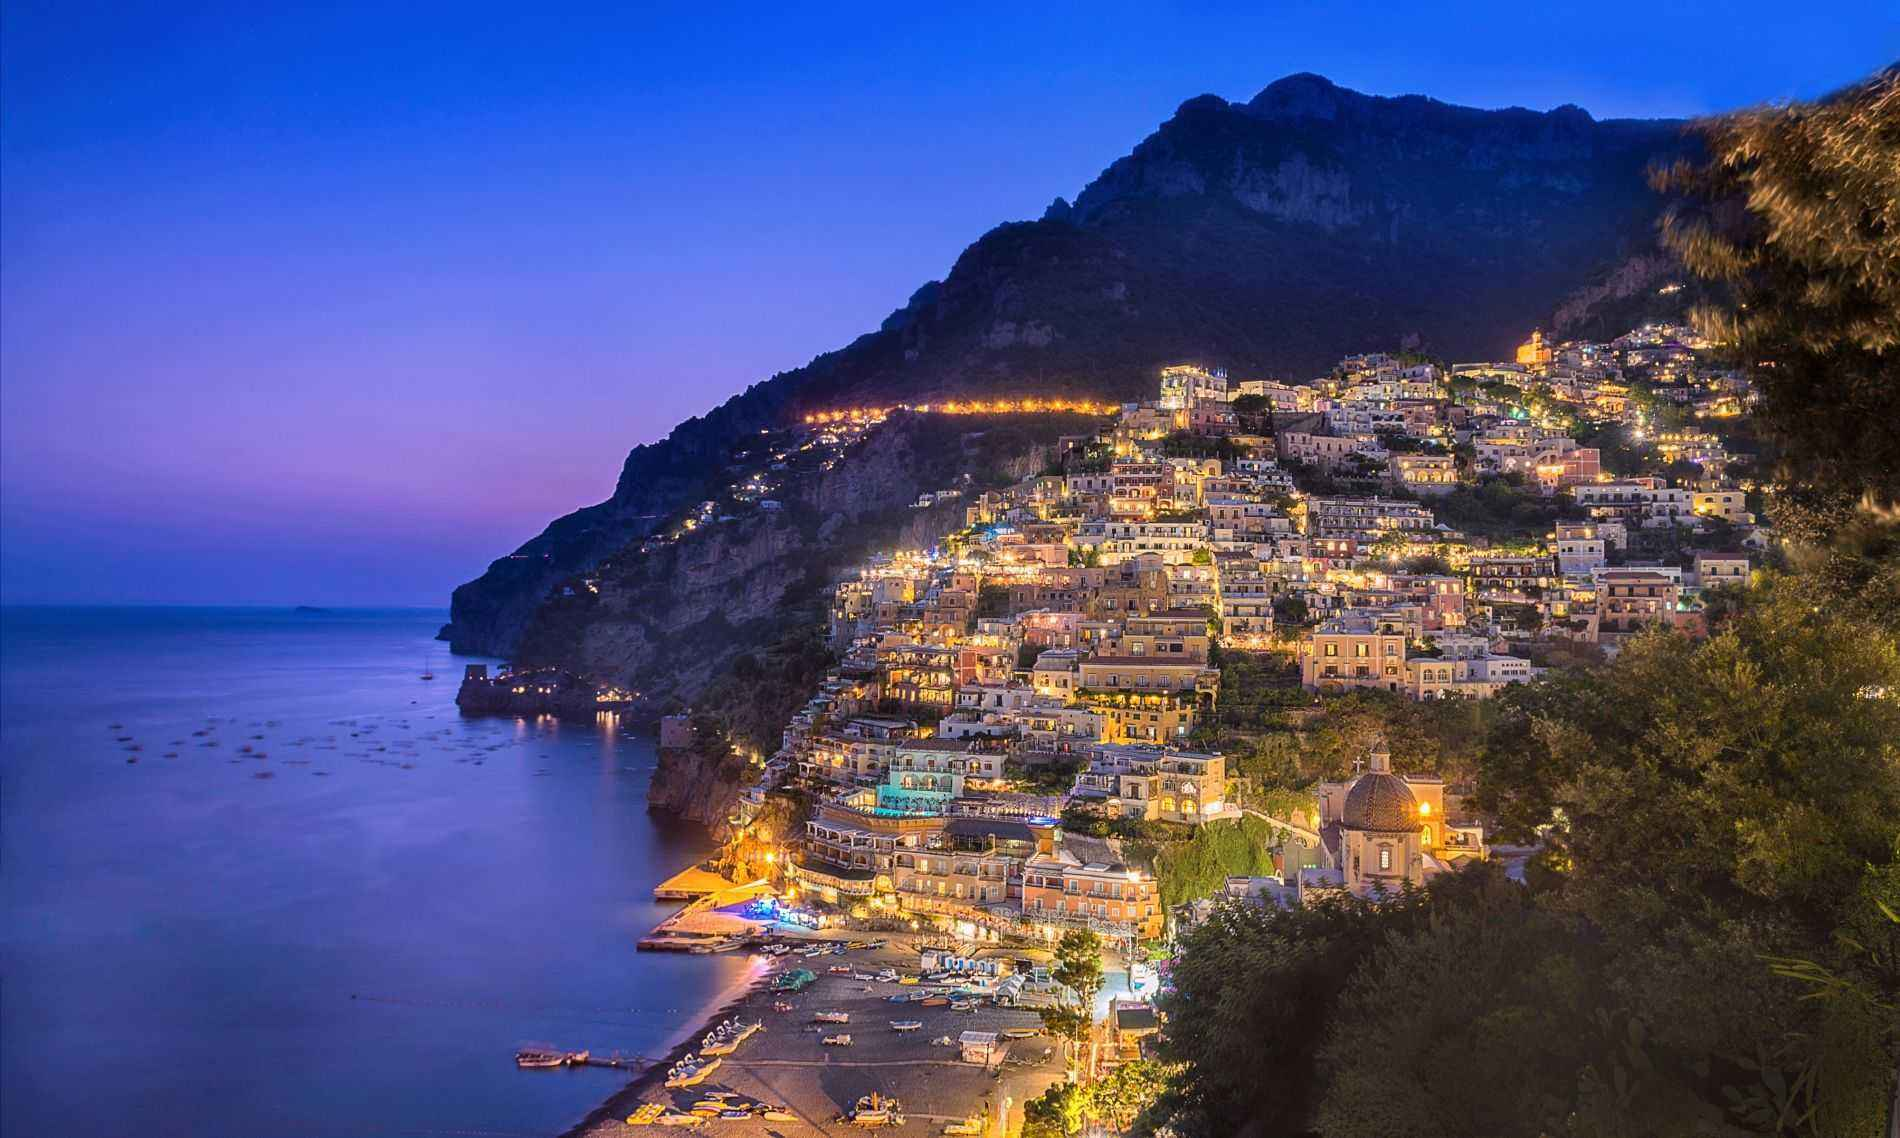 Illuminated view of Positano cradled by the sea, Italy